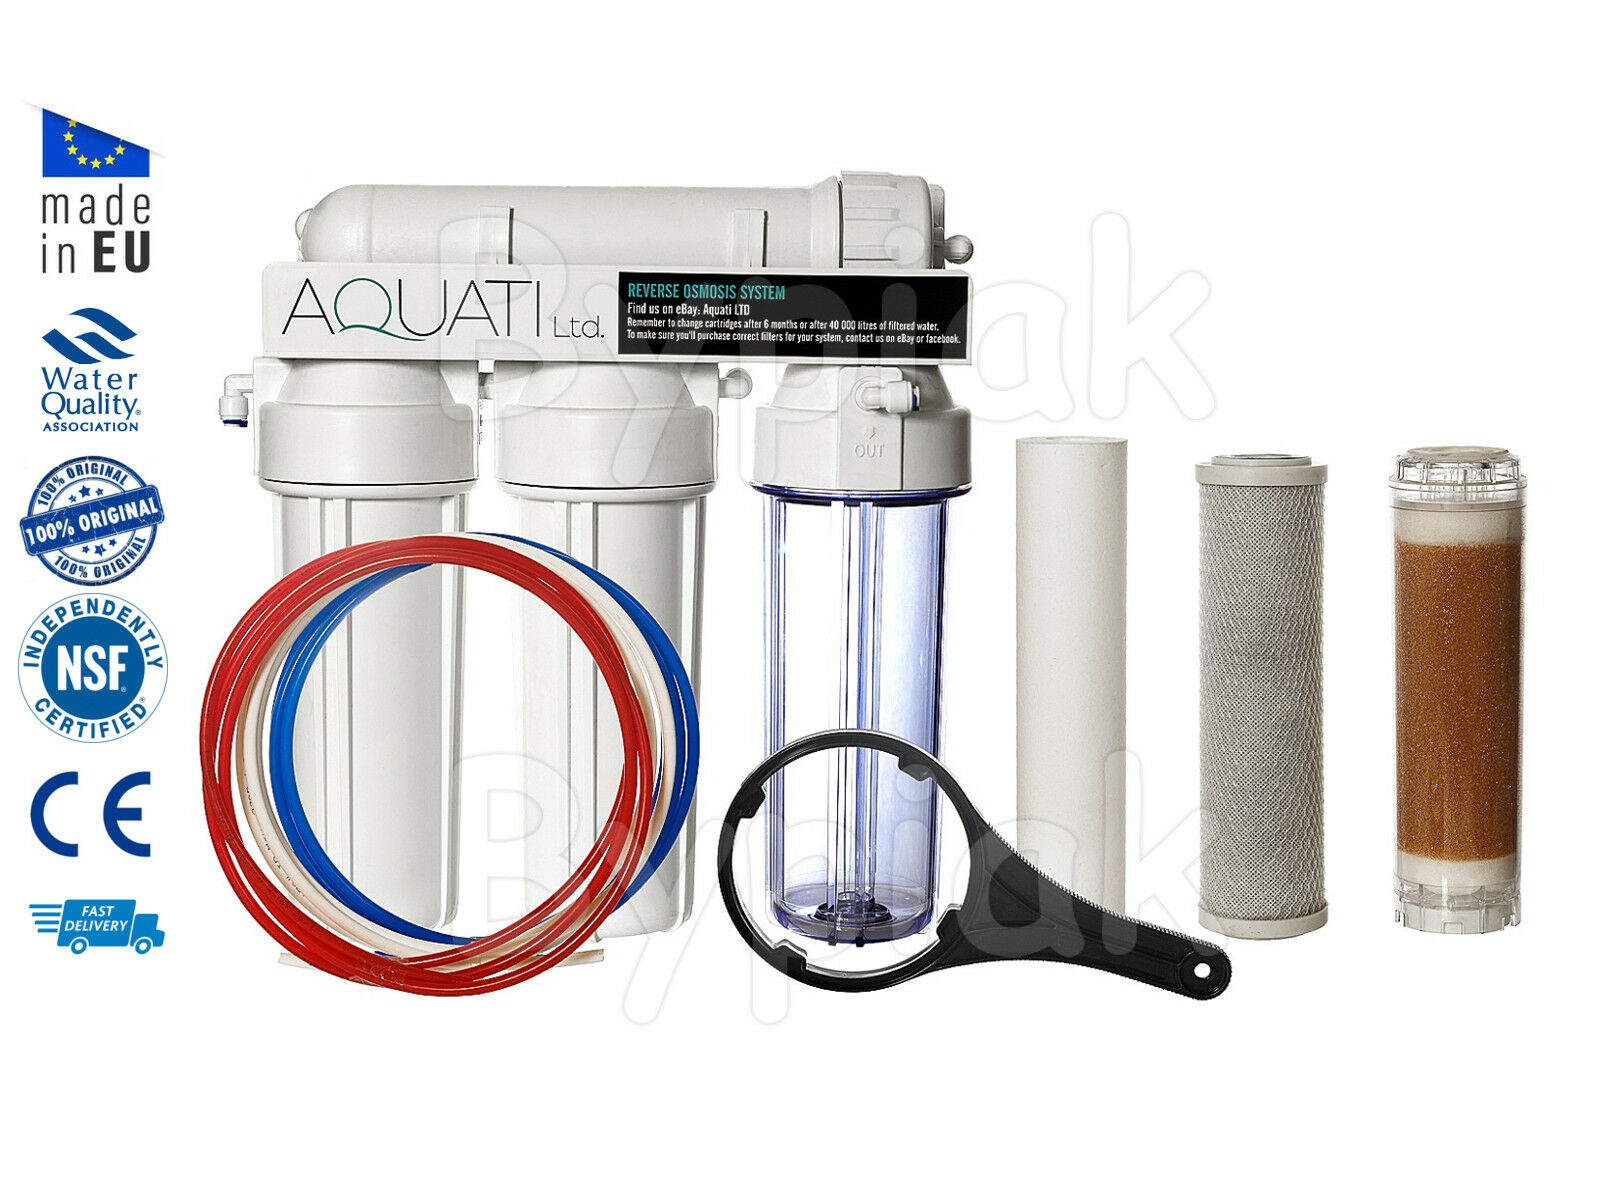 New 4 Stage RO water filter Reverse Osmosis system with DI resin chamber 50 GPD